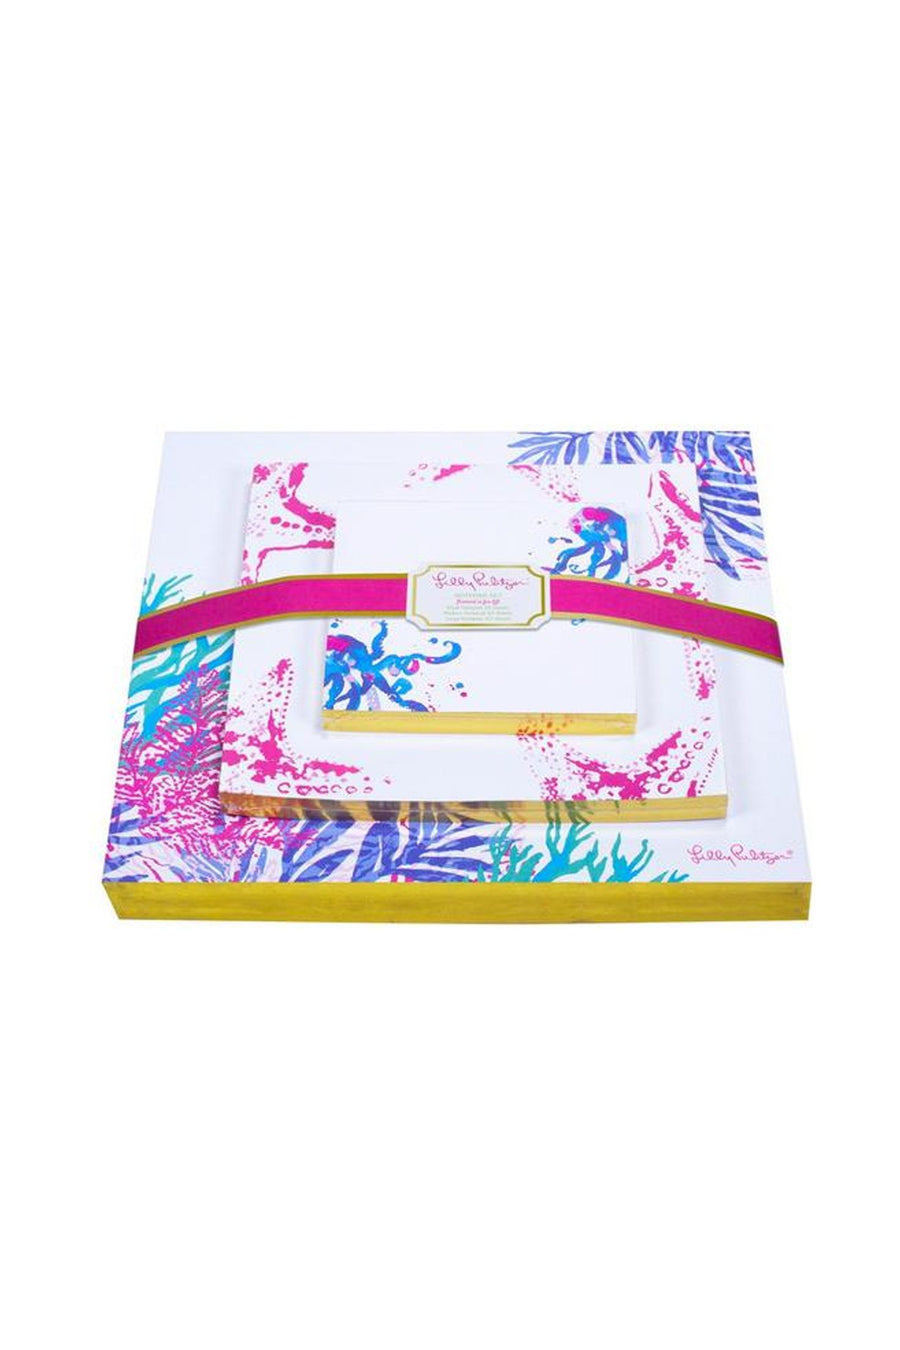 Lilly Pulitzer Note Pad Set, Accessories, Lilly Pulitzer, - Sunny and Southern,